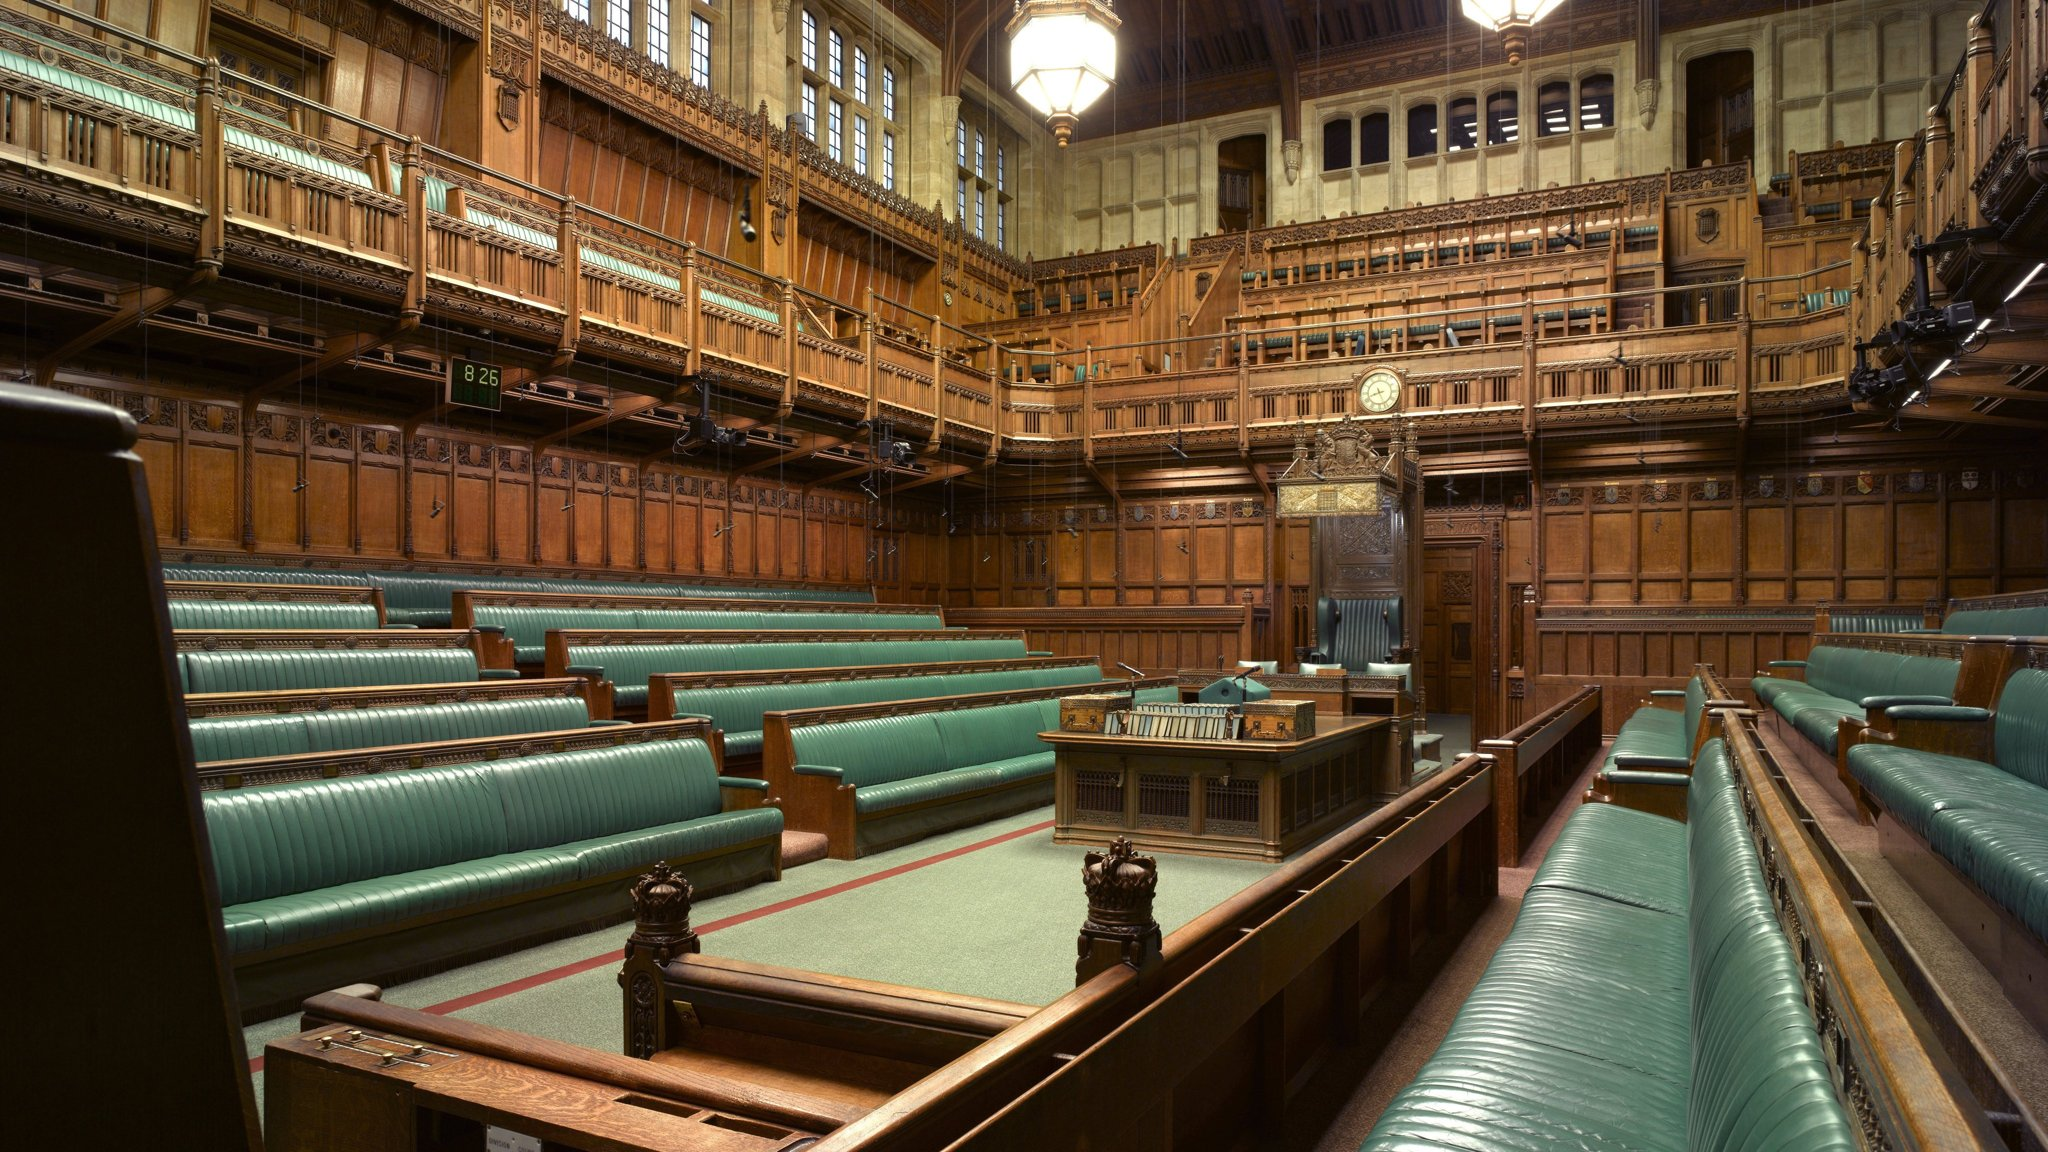 Why stop at parliament? Let's get rid of the whole government